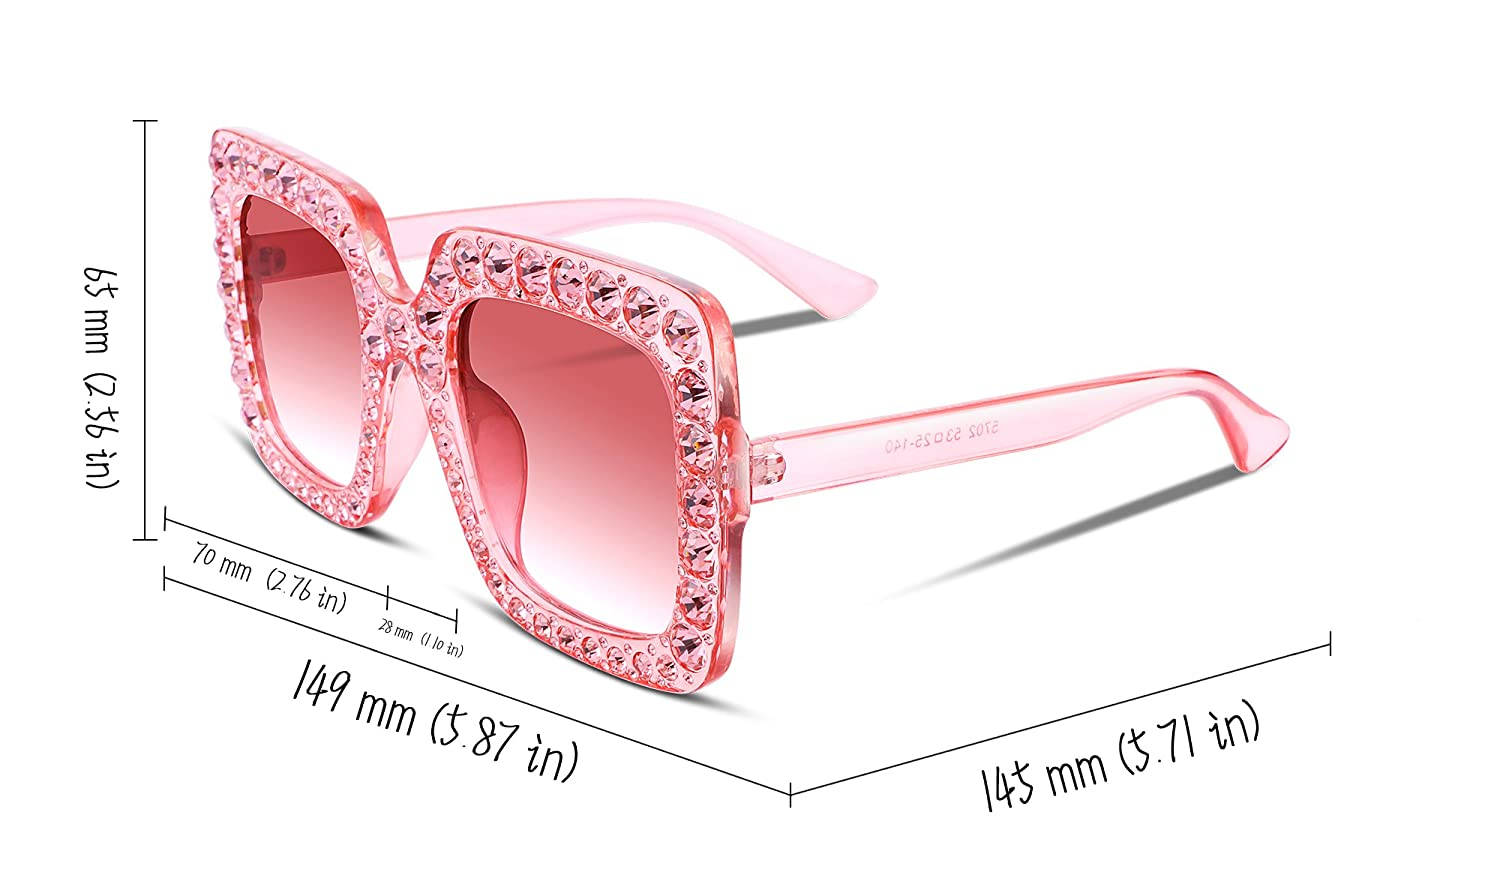 0564f6ad46a Amazon.com  FEISEDY Women Sparkling Crystal Sunglasses Oversized Square  Thick Frame B2283  Clothing